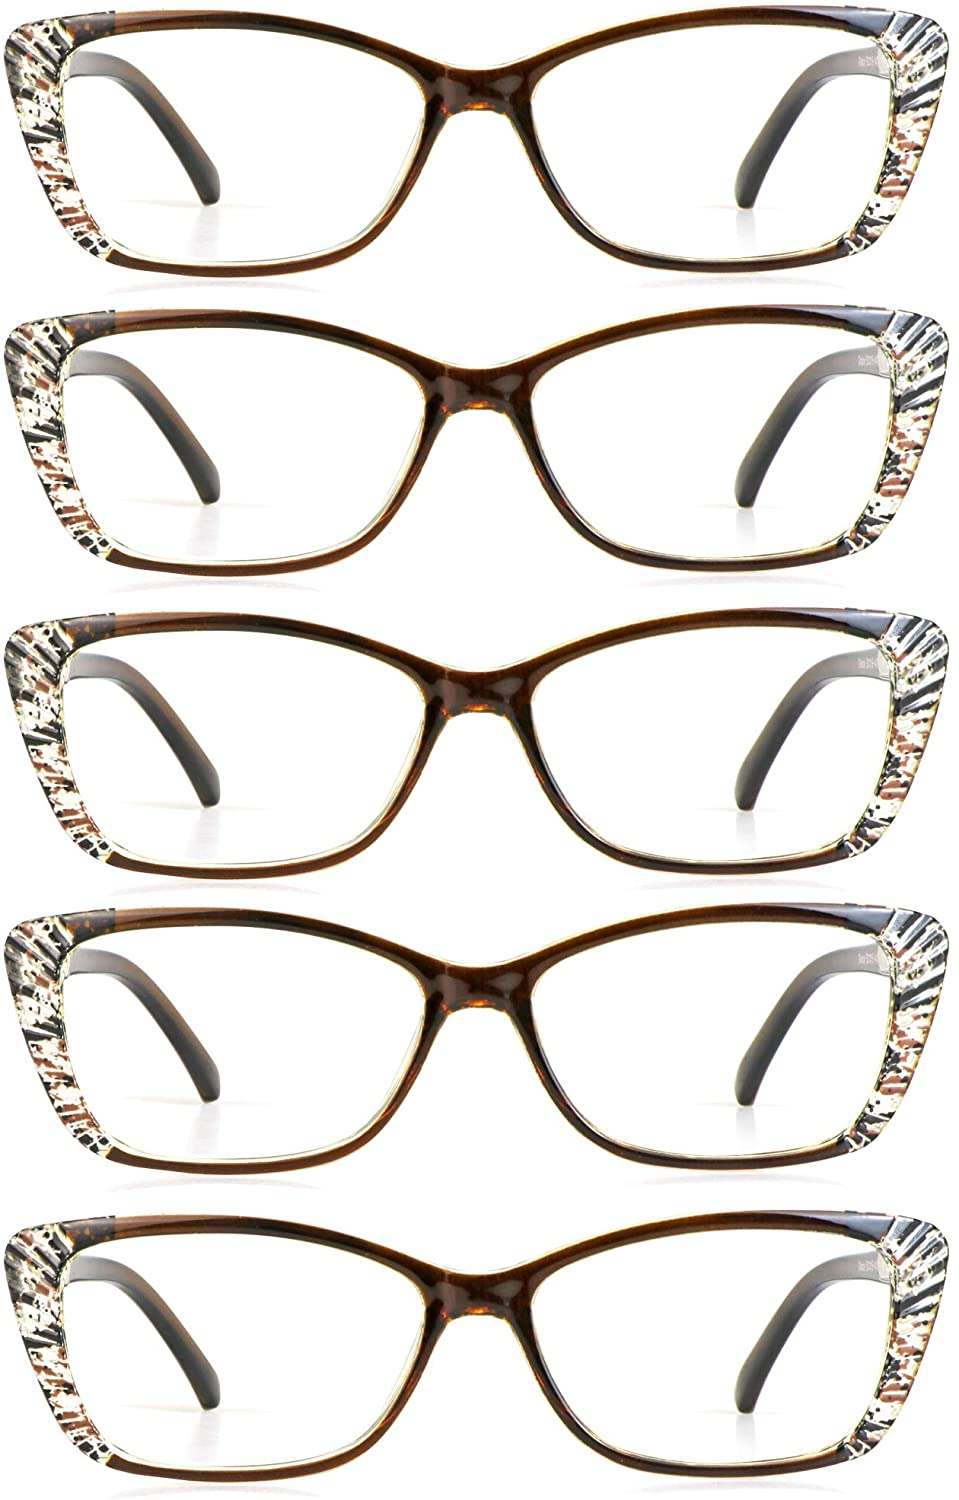 5 Pairs Reading Glasses, Blue Light Blocking Glasses, Computer Reading Glasses for Women Men, Fashion Eyewear Frame (5 Brown, 1.00 Magnification)